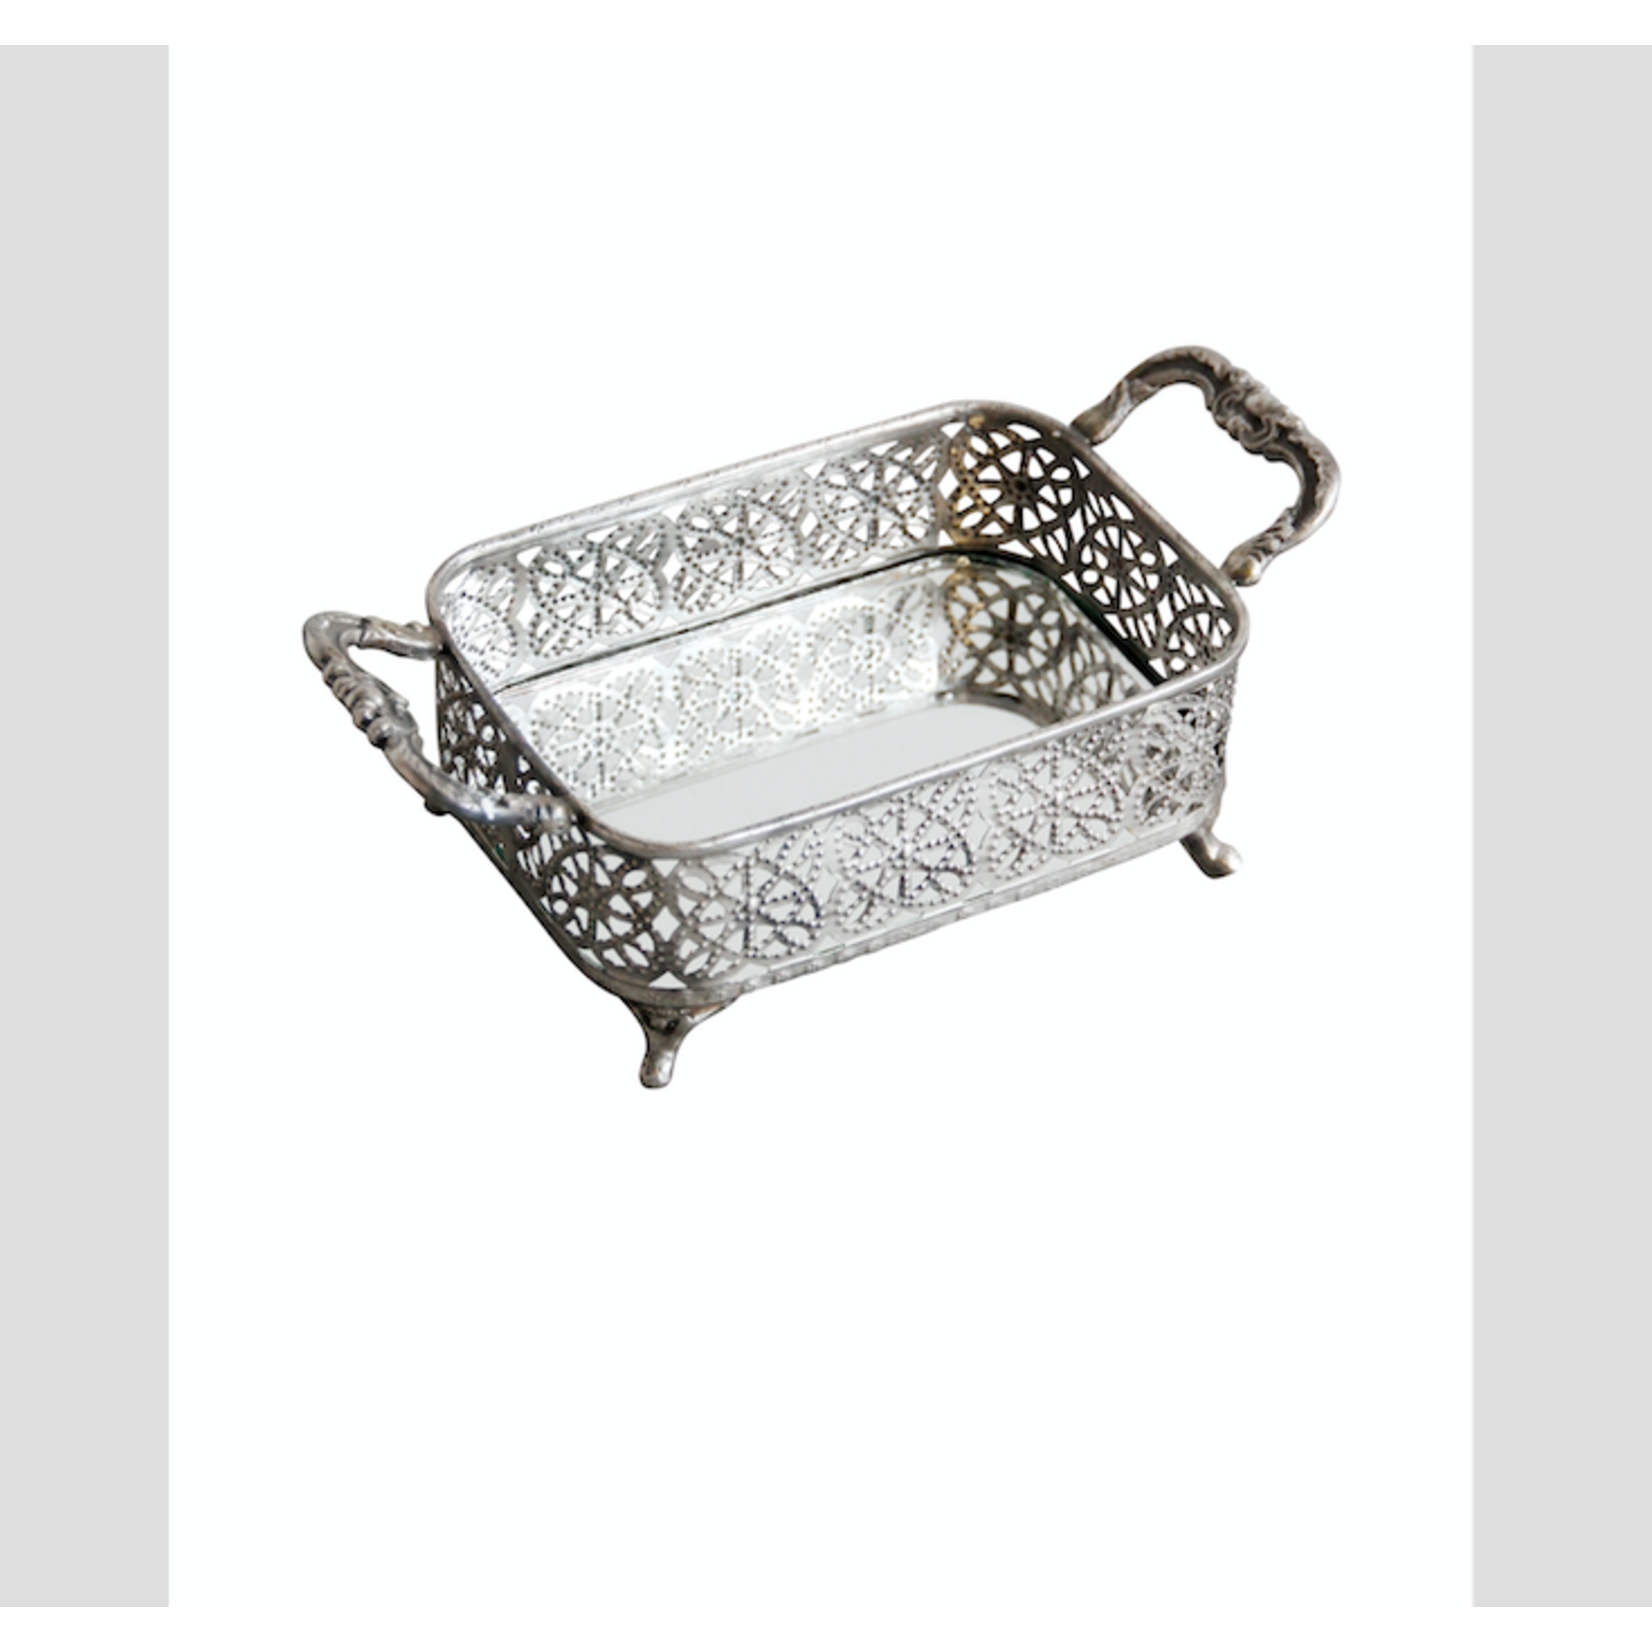 CHEHOMA SMALL METAL TRAY WITH MIRROR